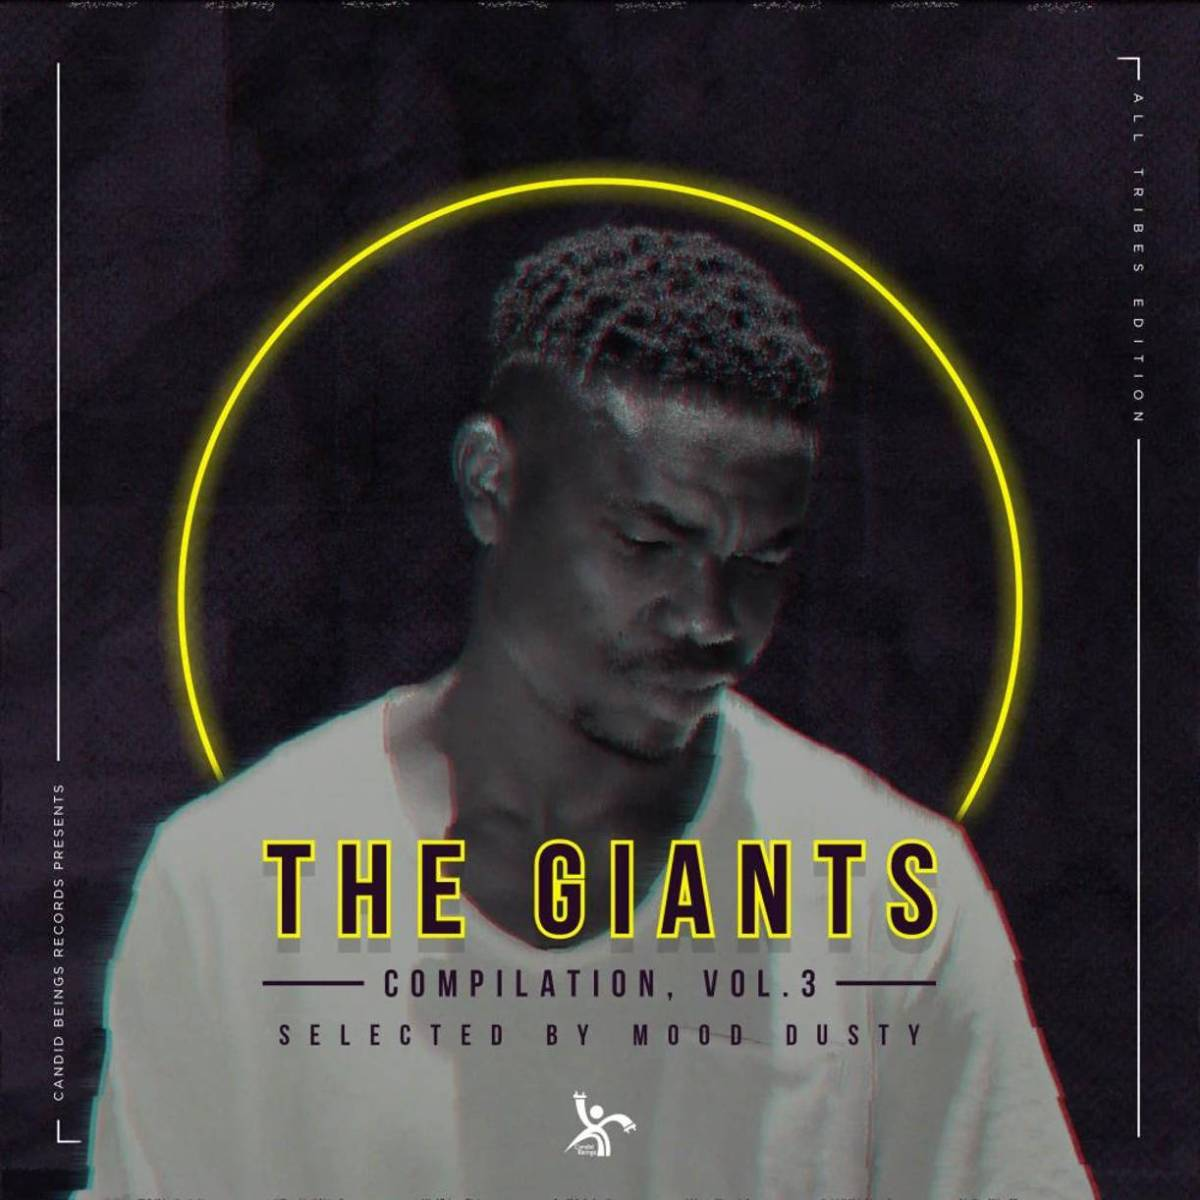 The Giants Compilation, Vol. 3 - Selected By Mood Dusty (All Tribes Edition)